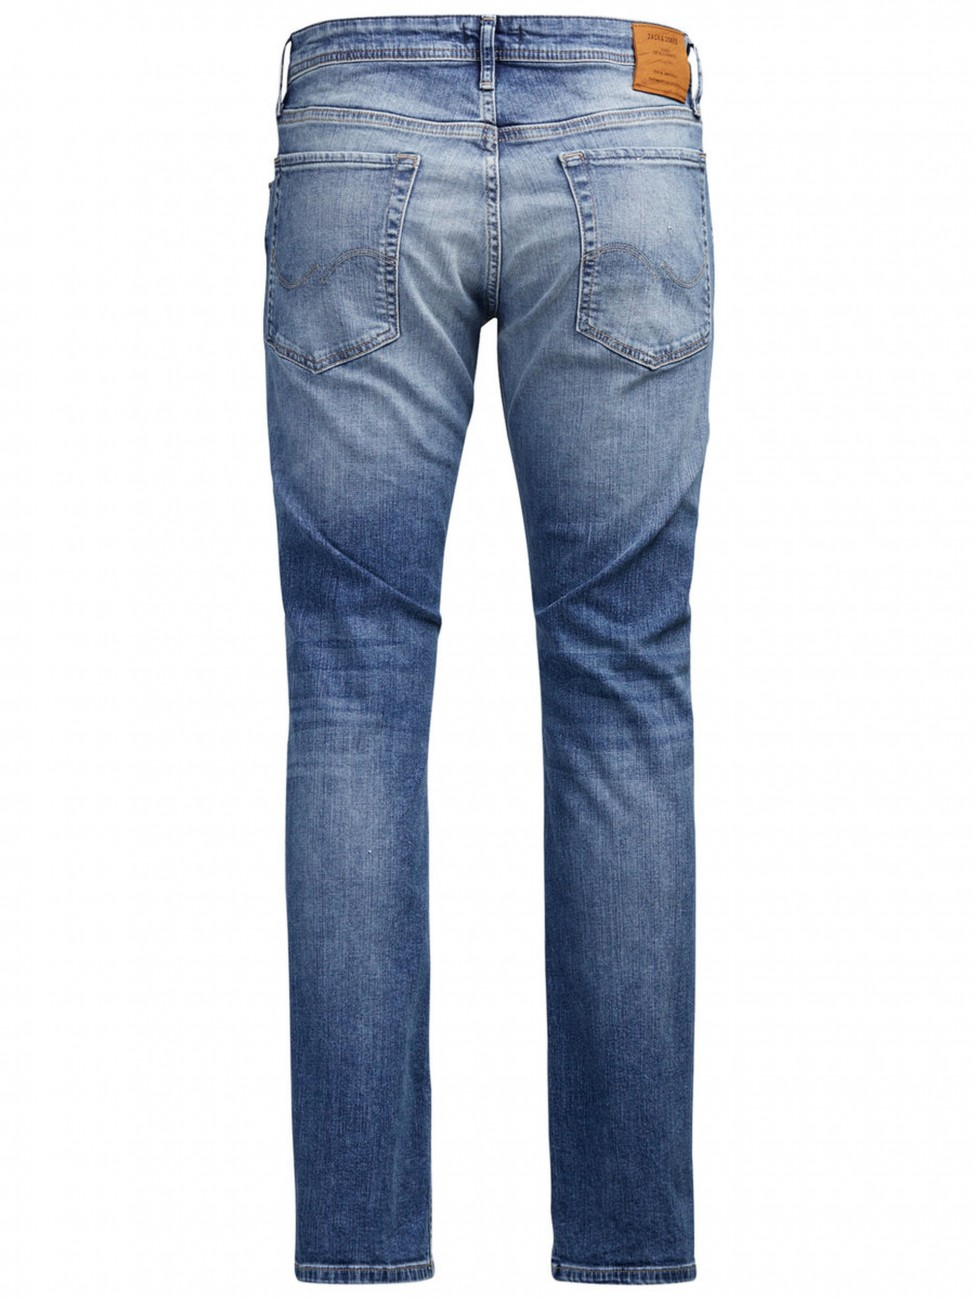 Jack & Jones Herren Jeans JJICLARK JJORIGINAL JJ 993 - Regular Fit - Blue Denim